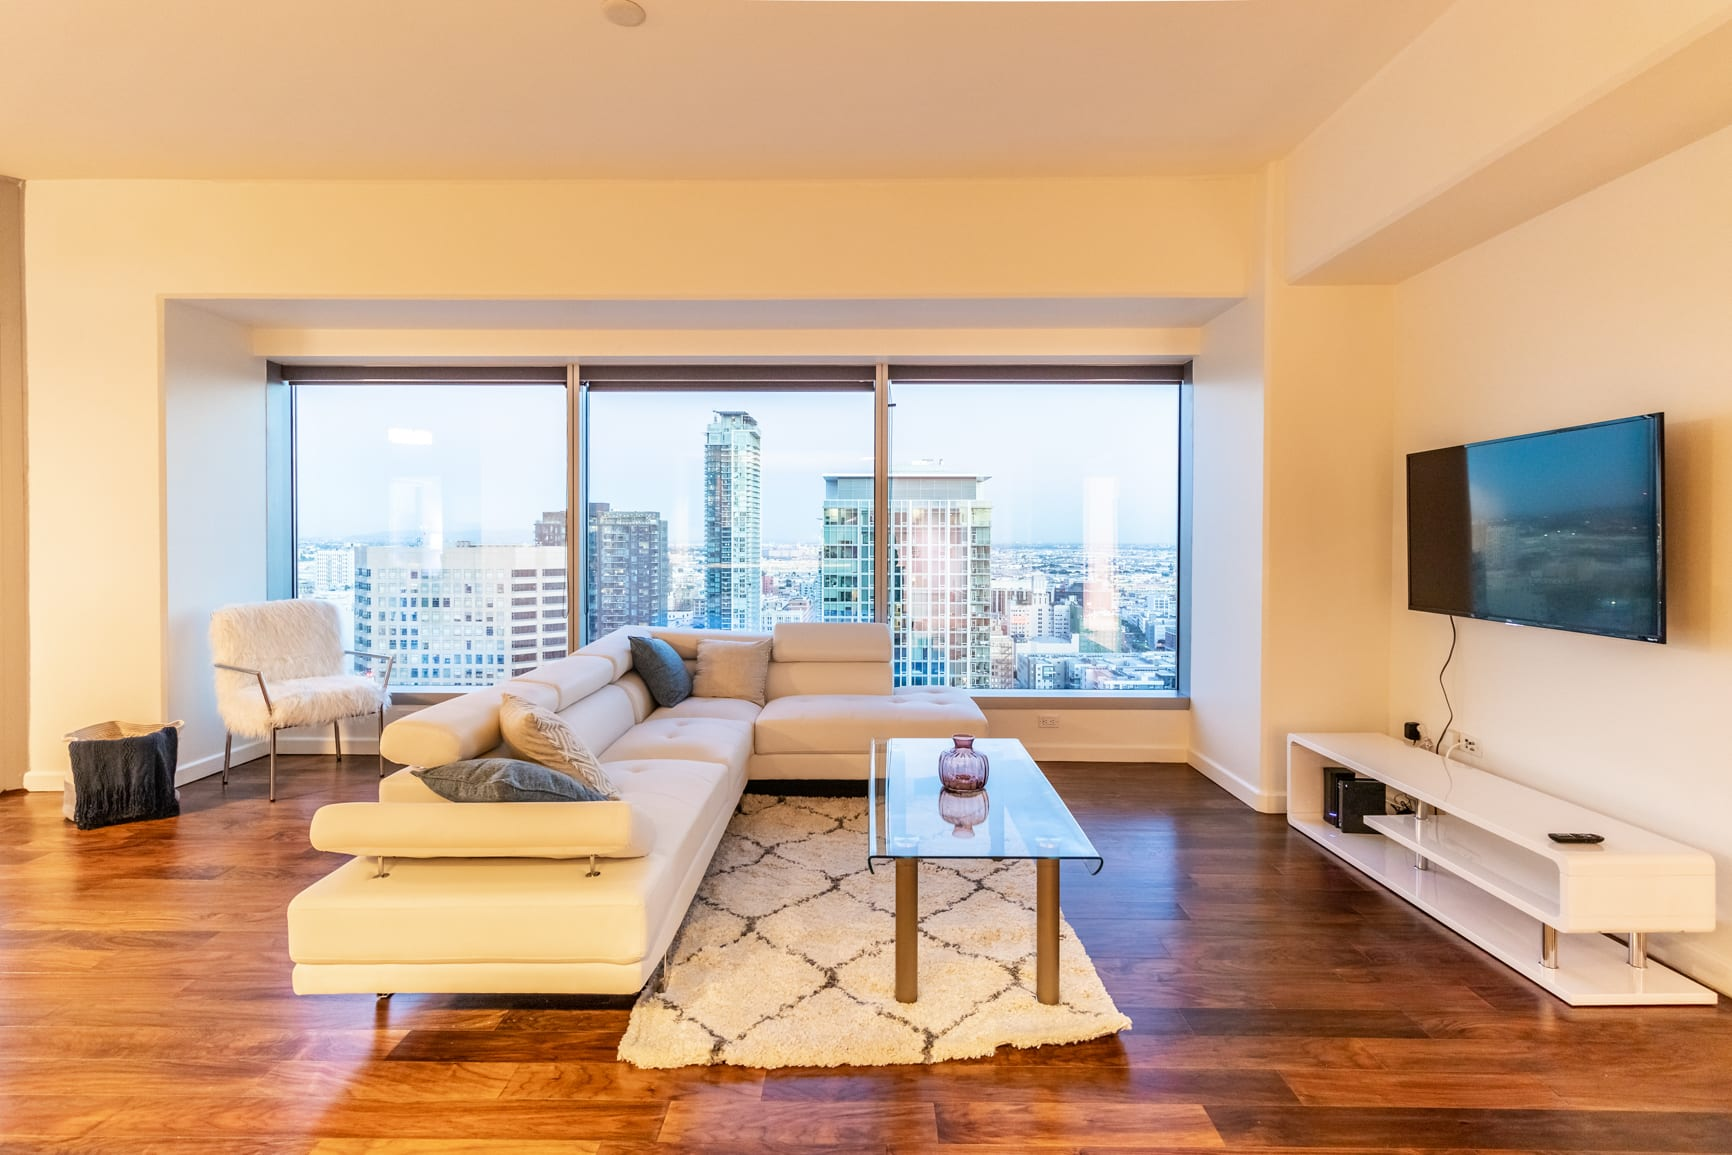 Luxury Single Private Bedroom in San Diego (DISCOUNTED RATE)!